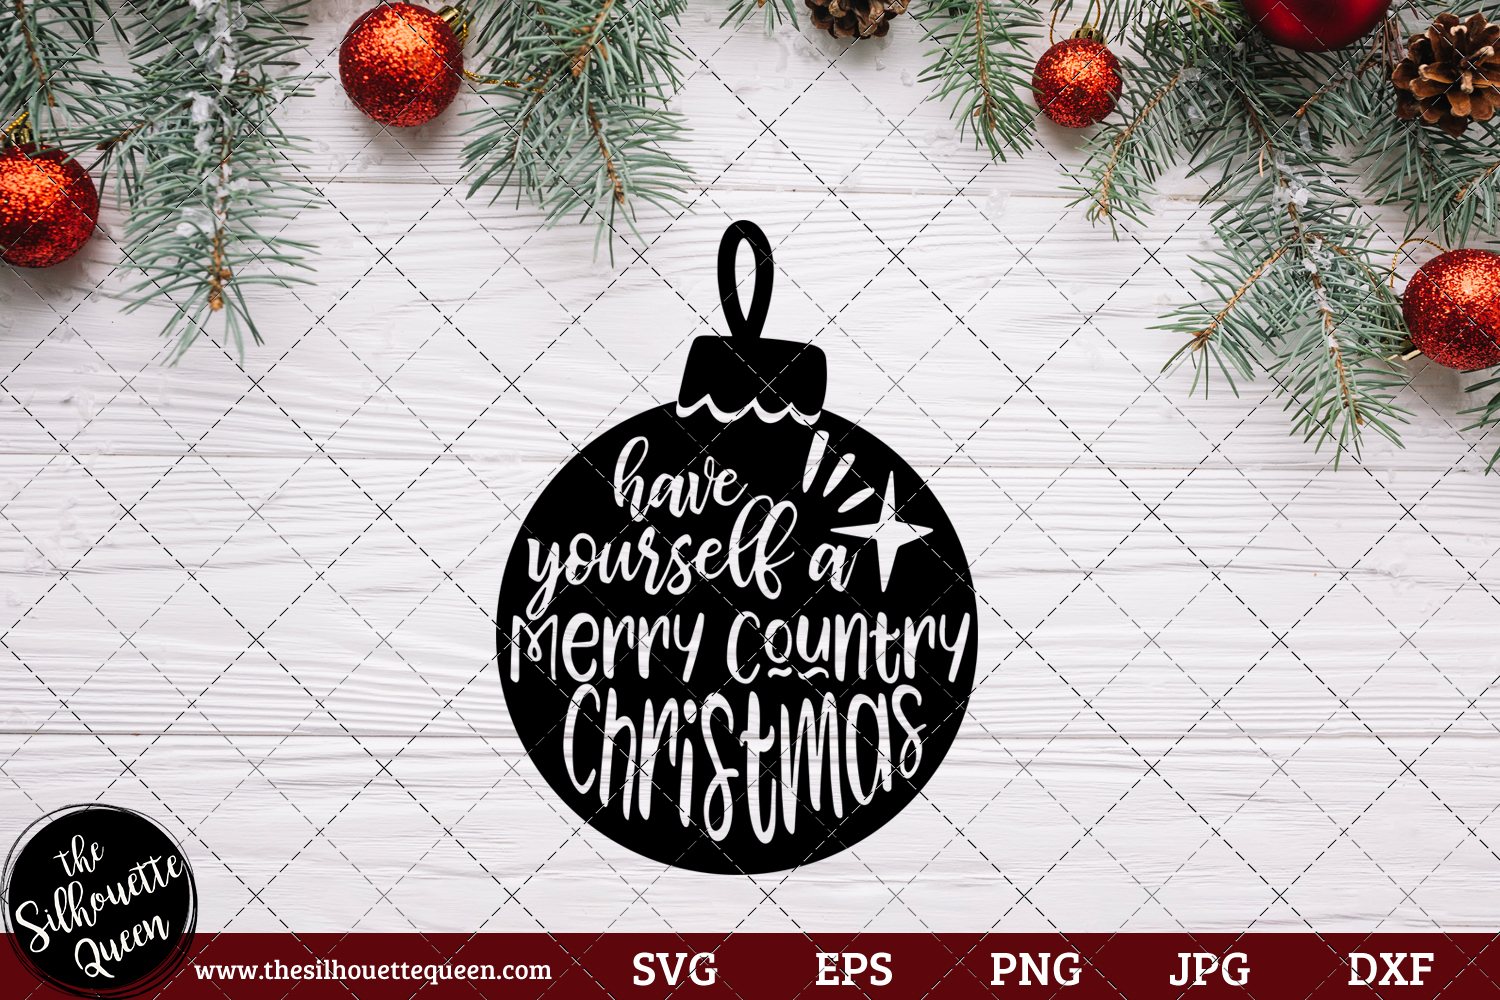 Download Free Have Yourself A Merry Country Christmas Graphic By for Cricut Explore, Silhouette and other cutting machines.